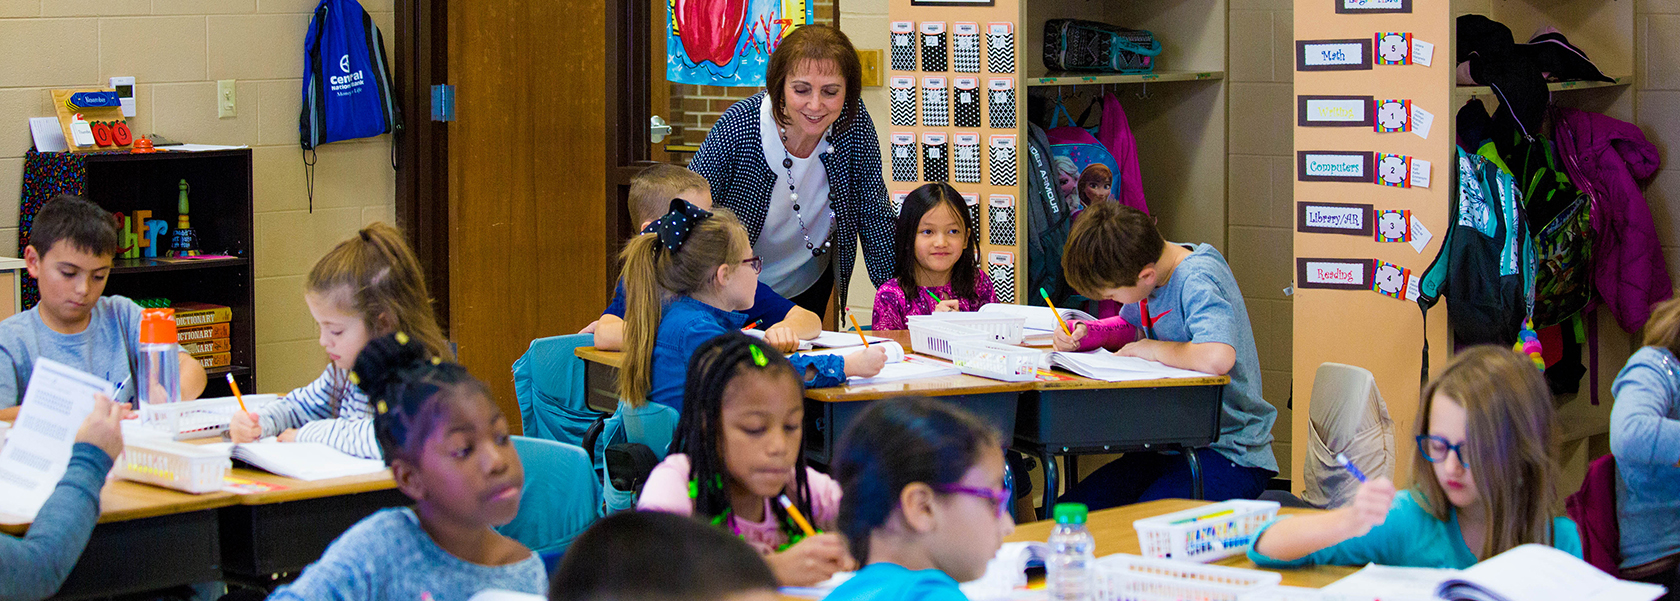 Susan Kamphaus Working with Students